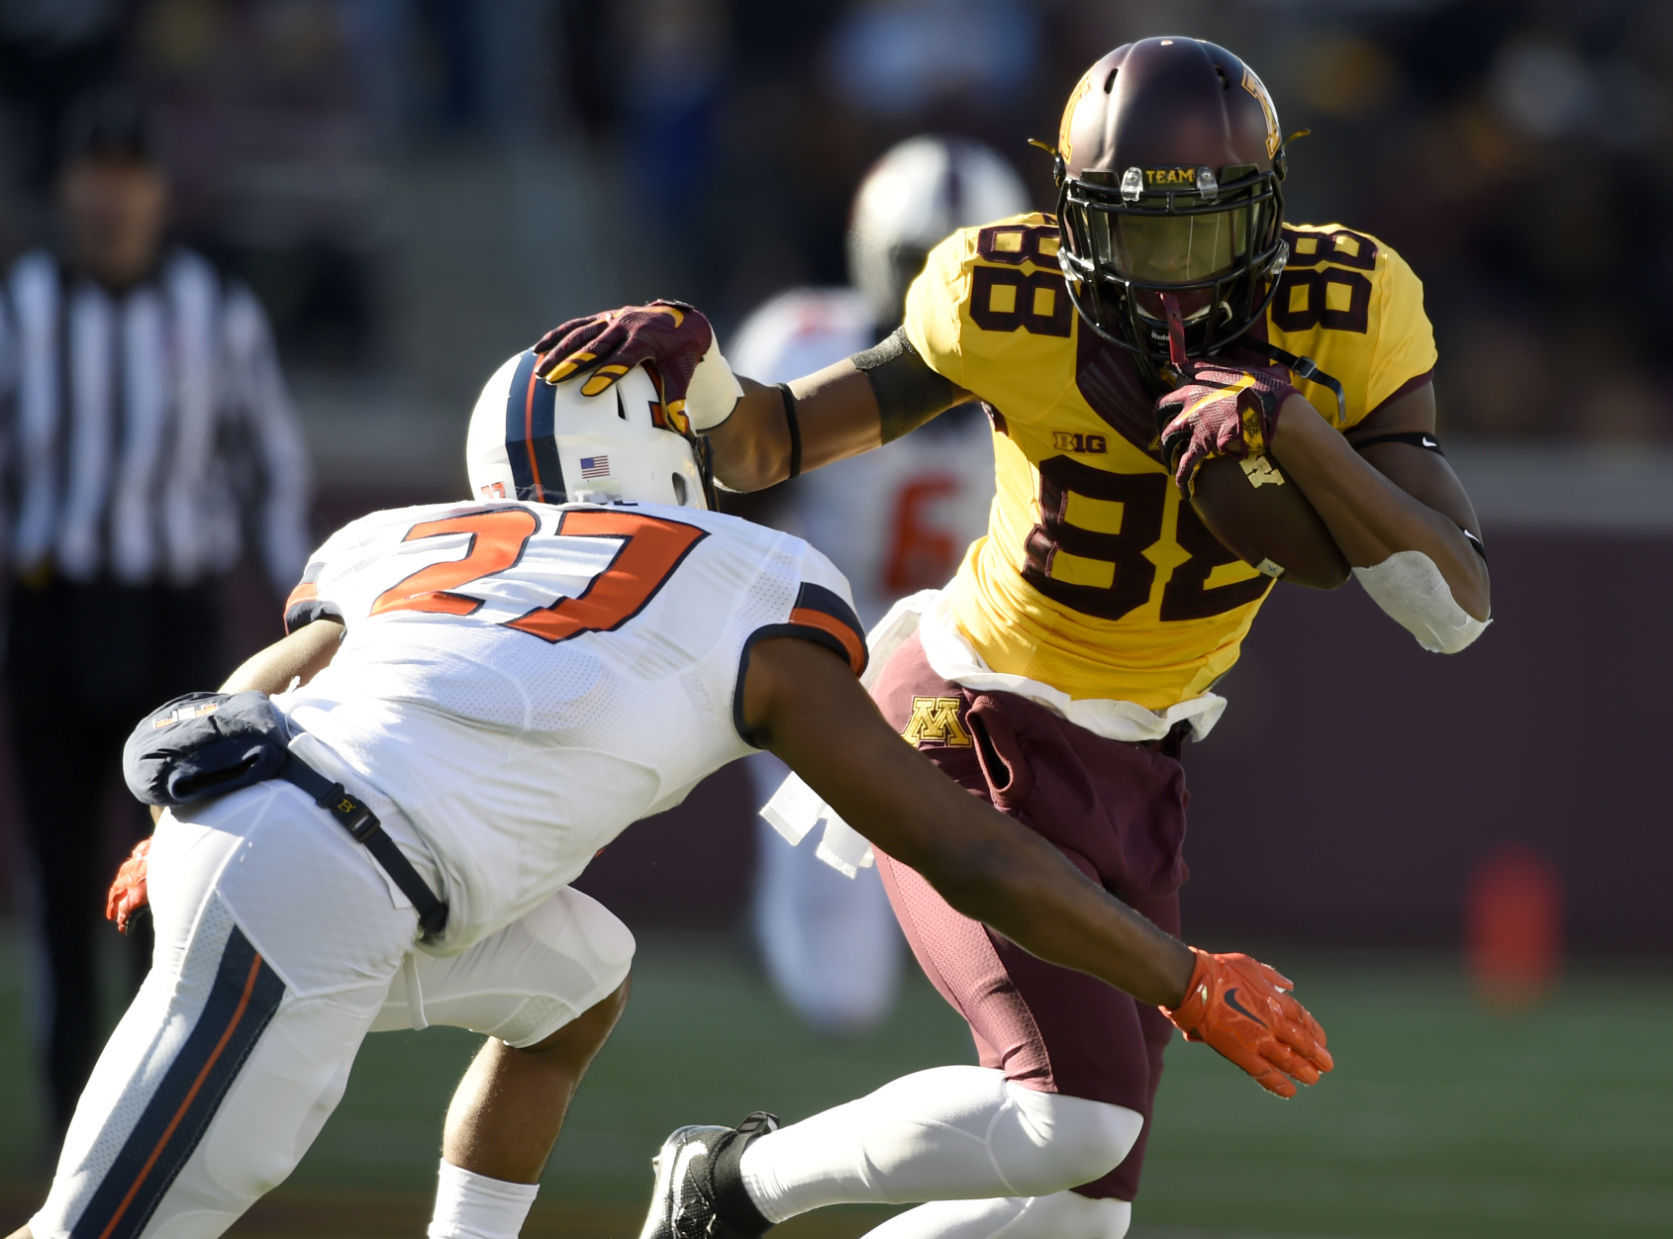 Watch Minnesota surprise kicker Justin Juenemann with full scholarship